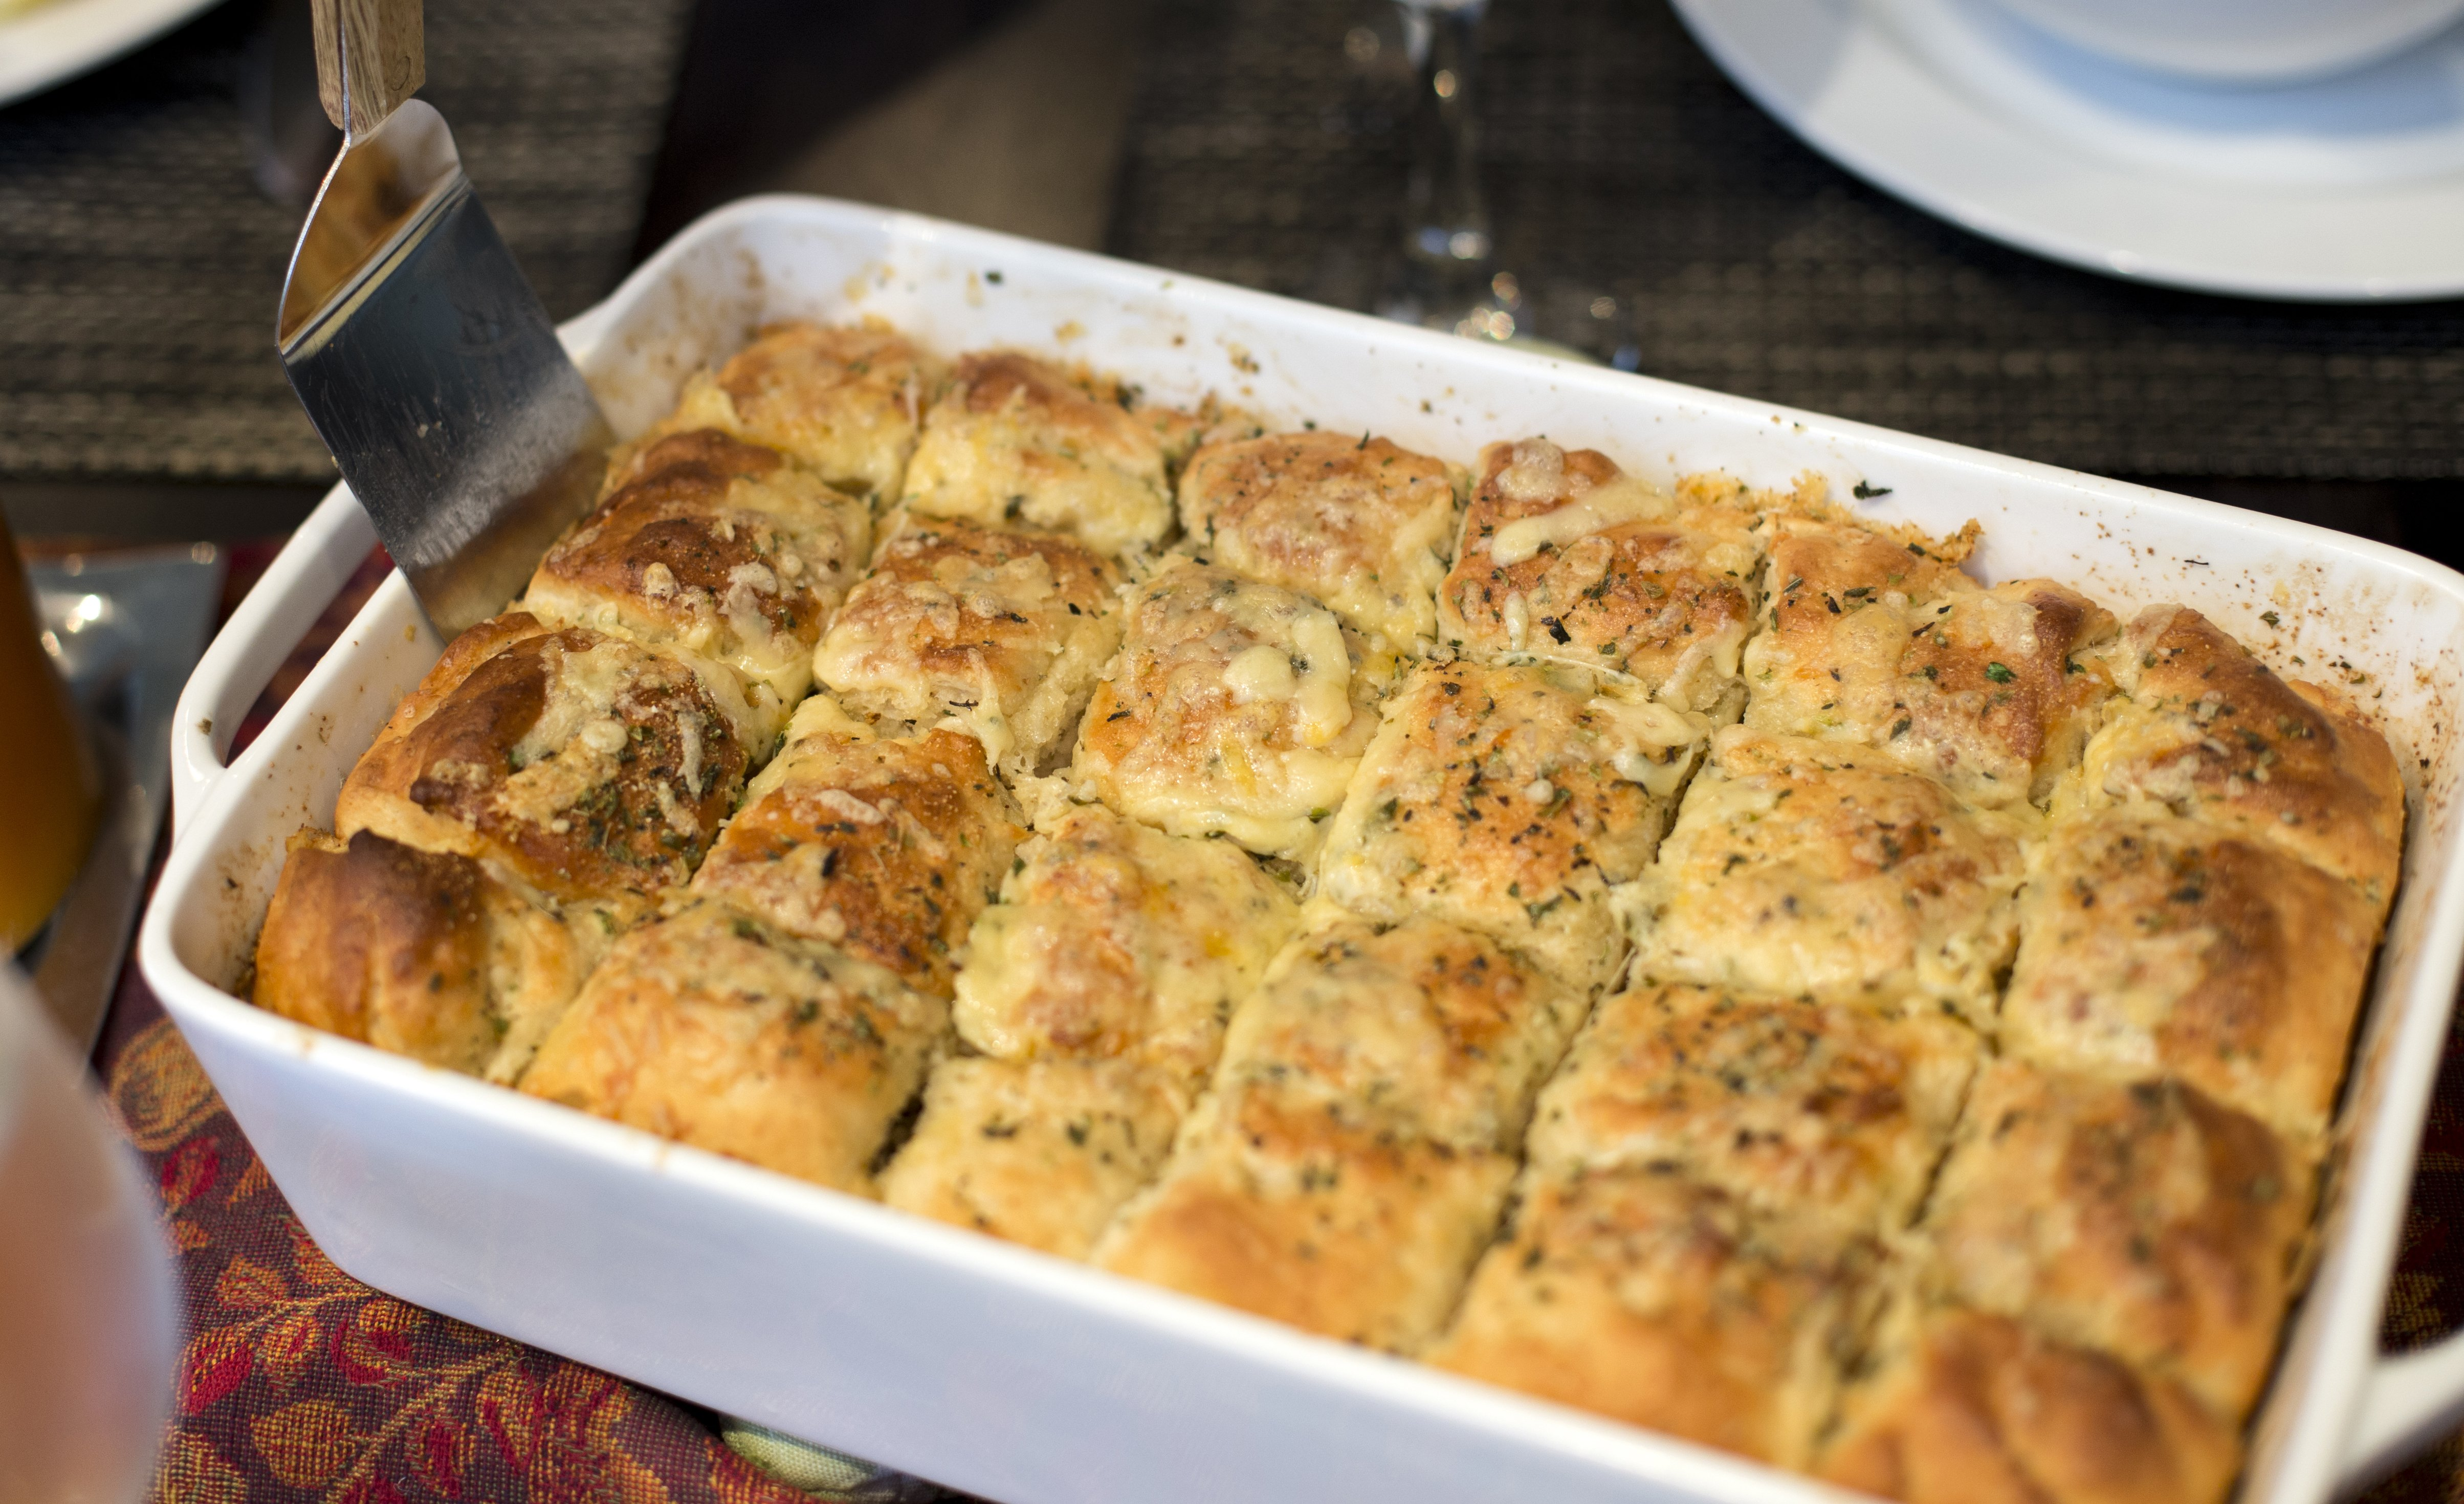 Herb & Cheese Pan Bread